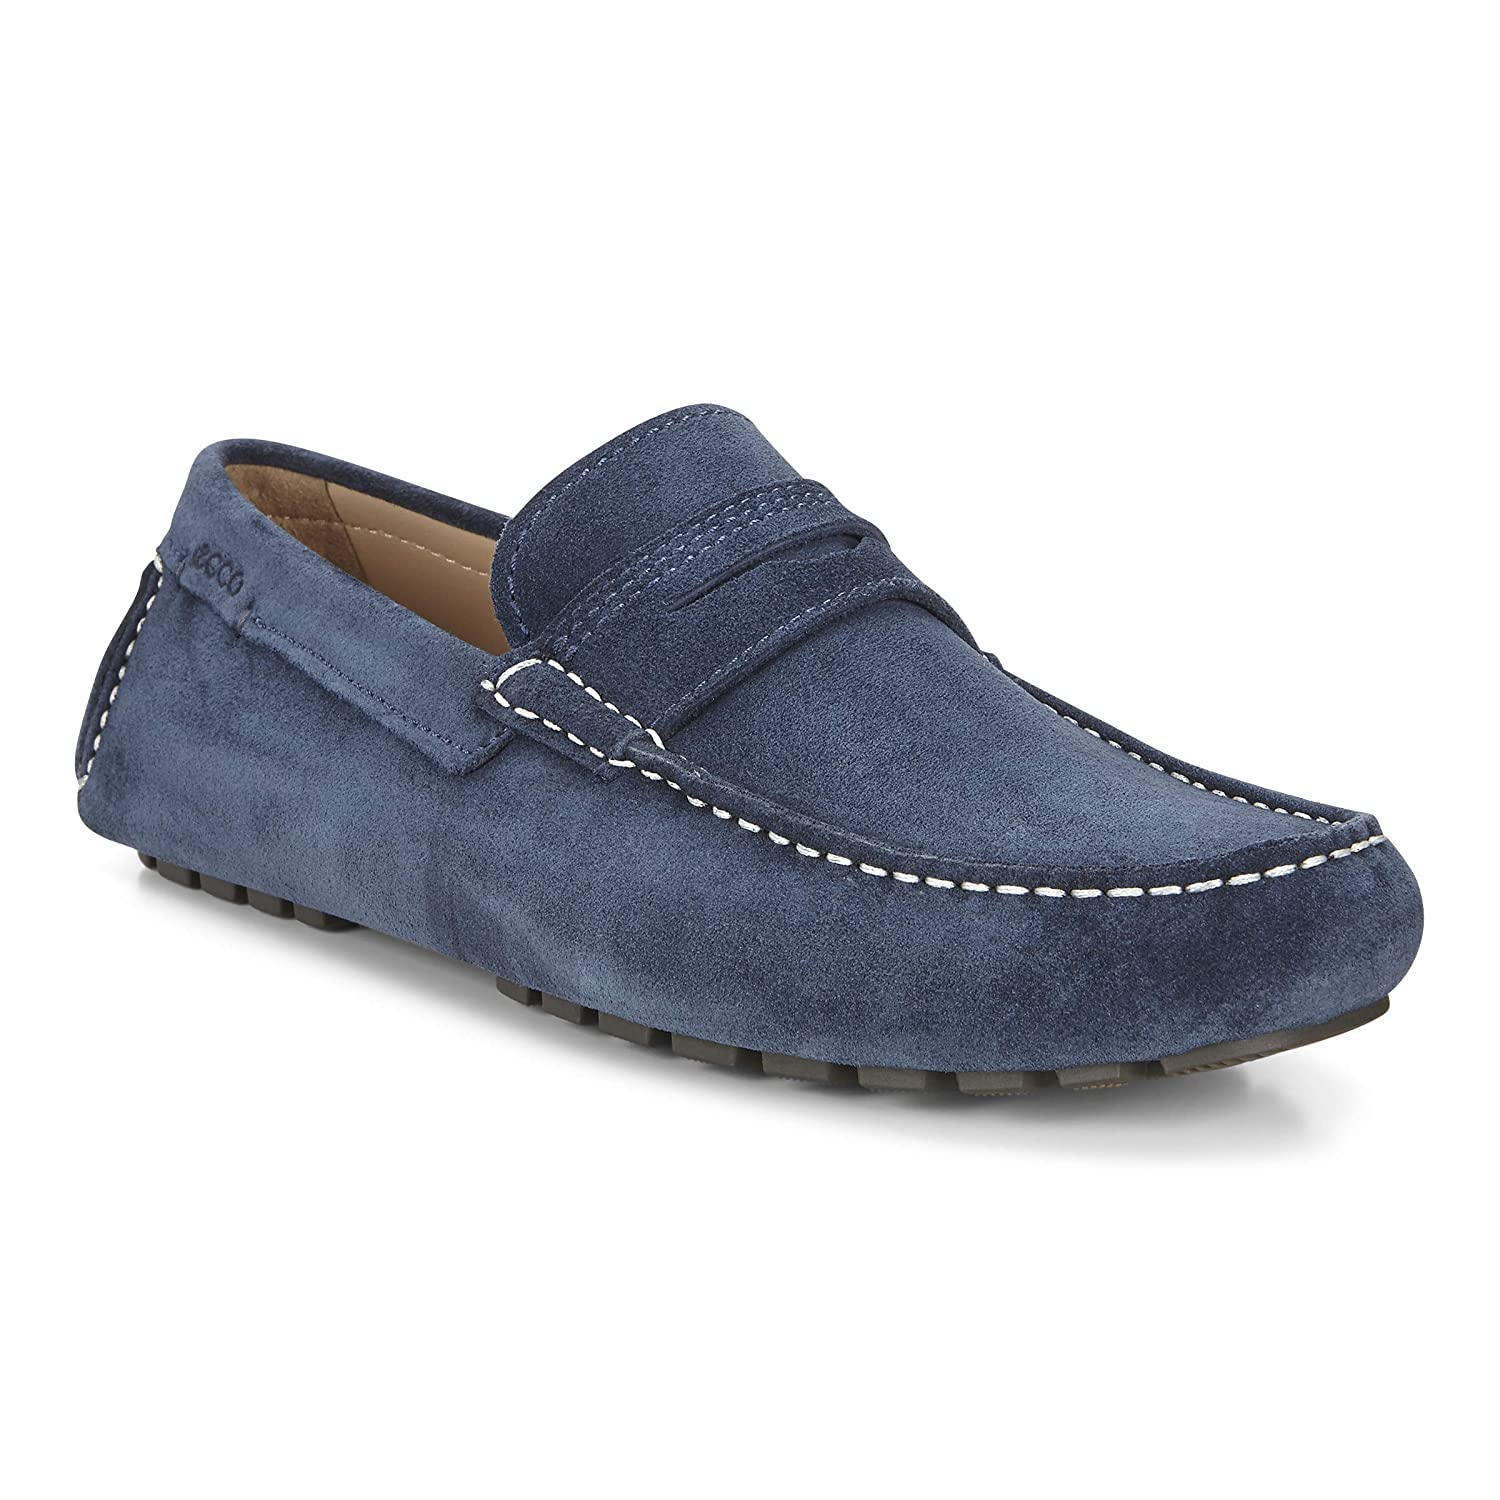 c556328c ECCO Men's Dynamic Moc 2.0 Penny Slip-On Loafer, Denim Blue, 46 EU ...